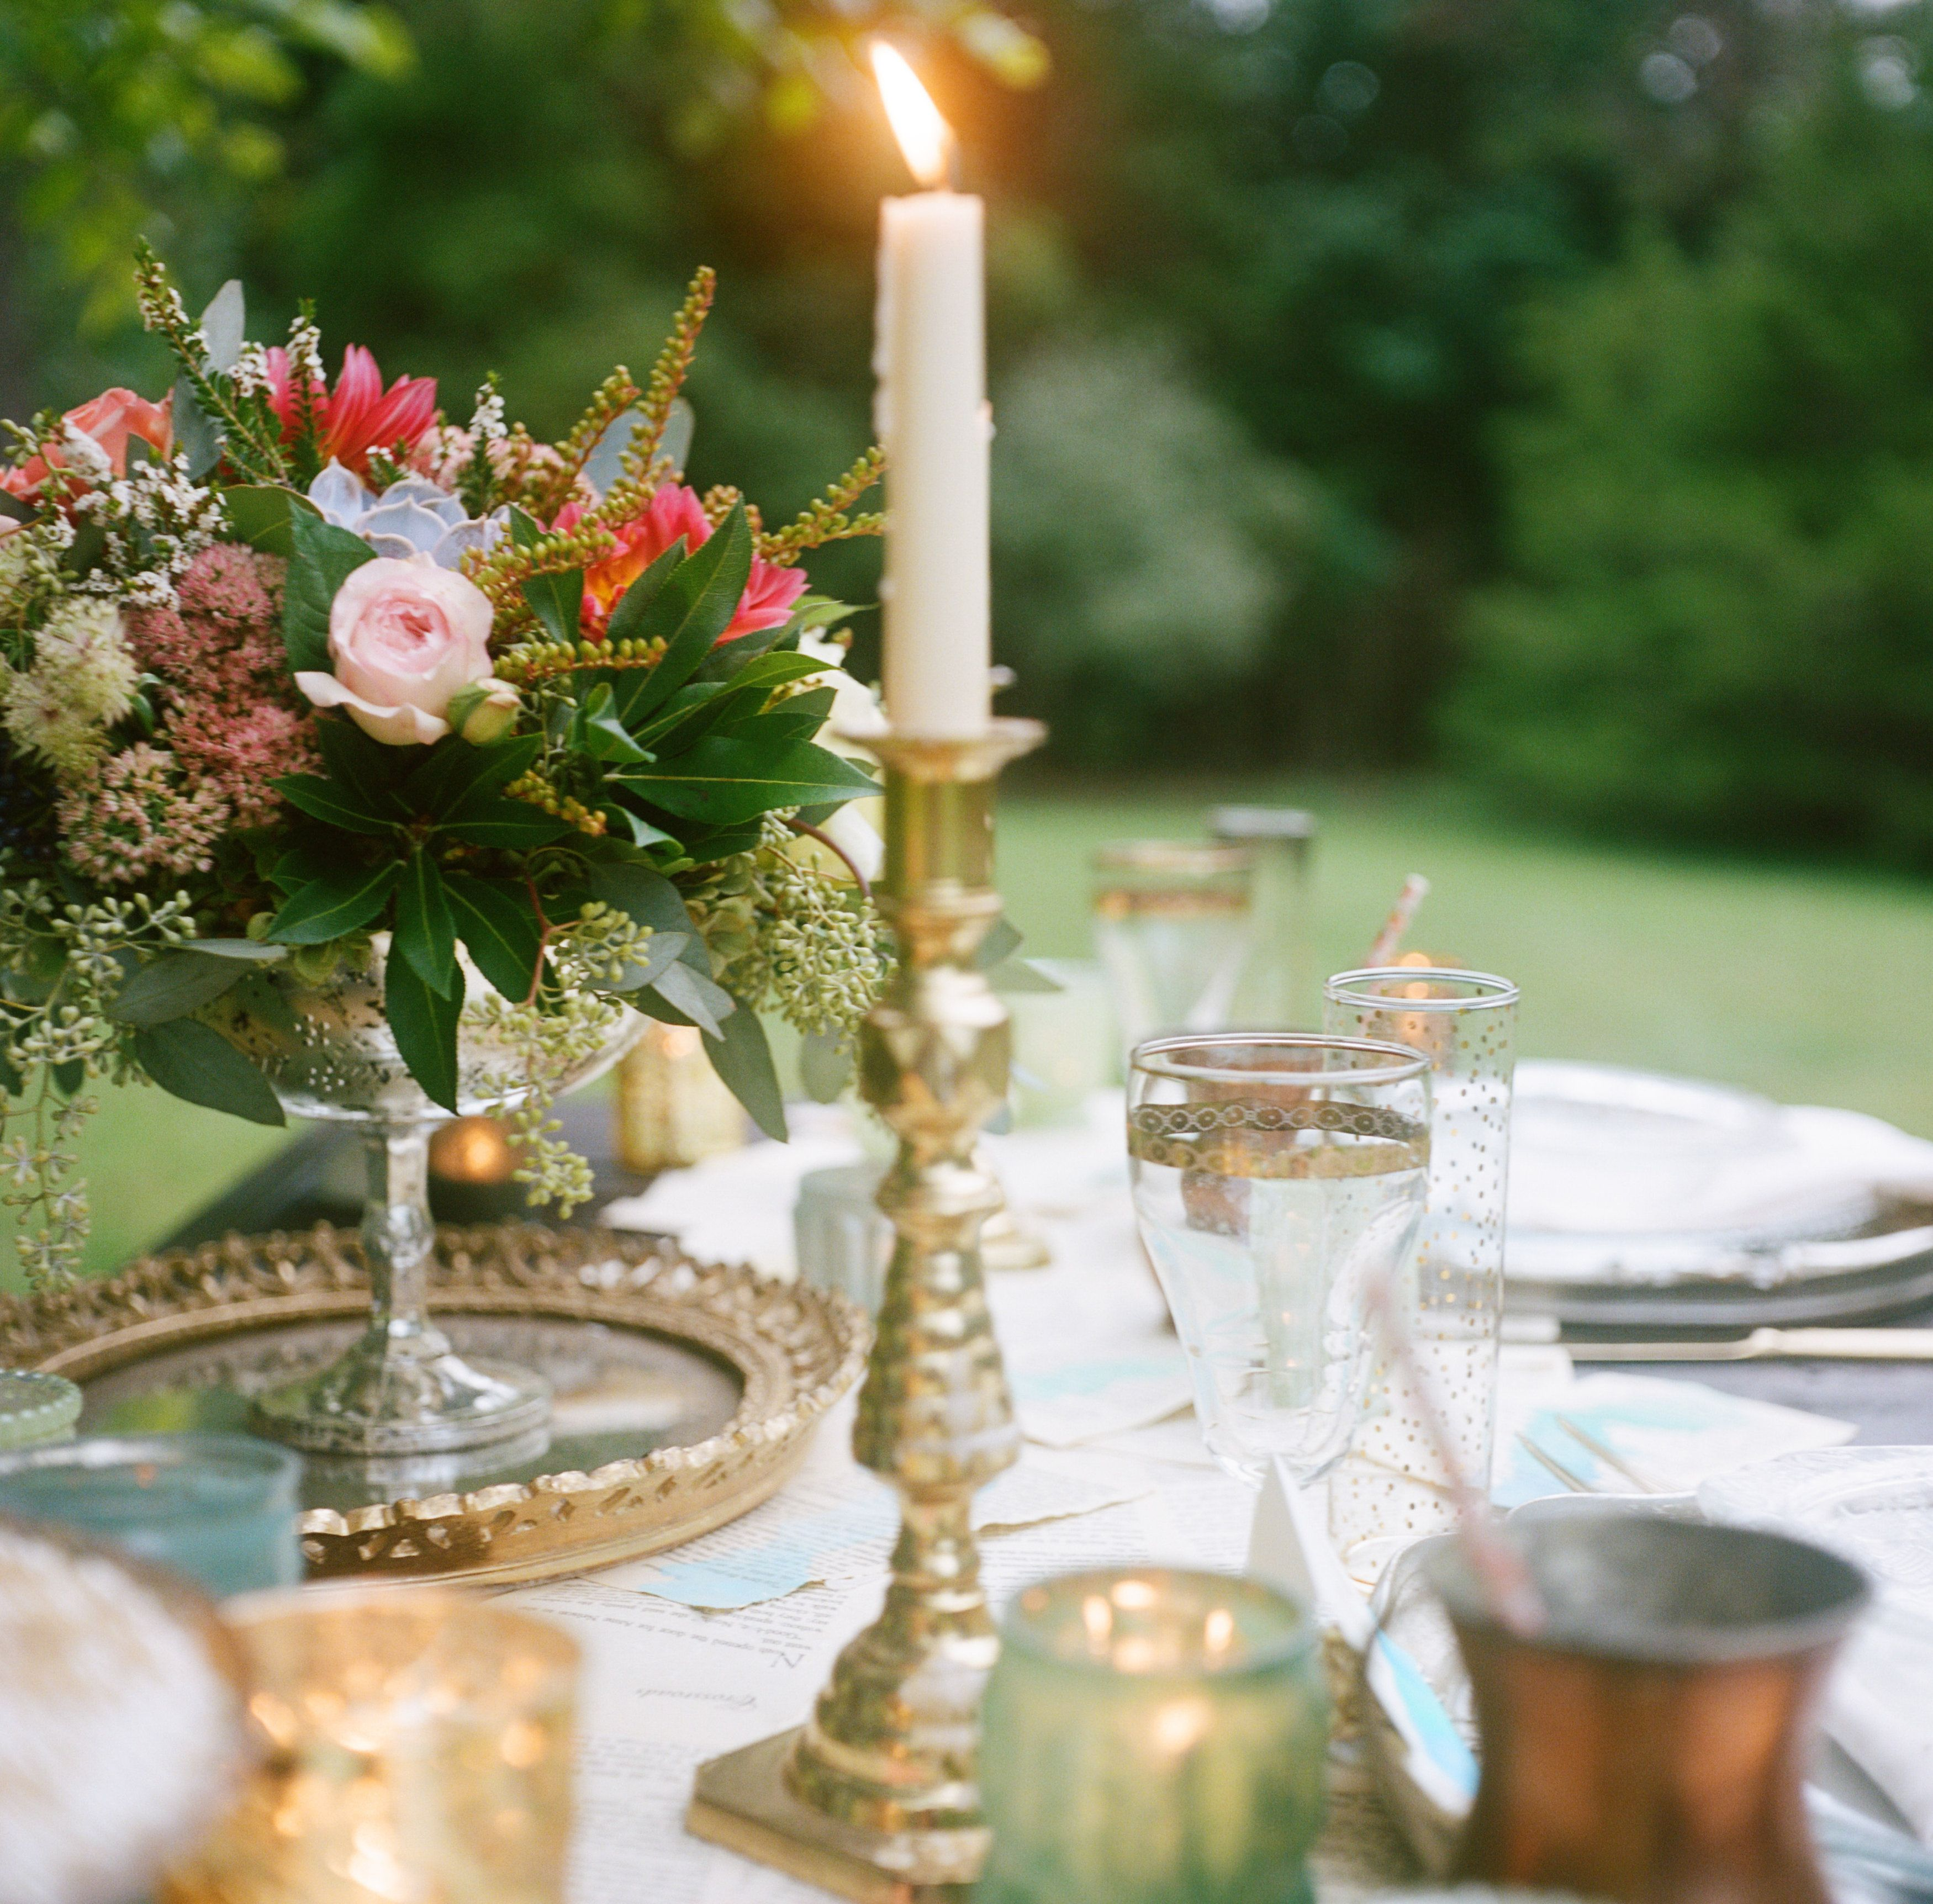 Summer Wedding - Centerpiece and Table Setting http://www.foxtailcottage.com/